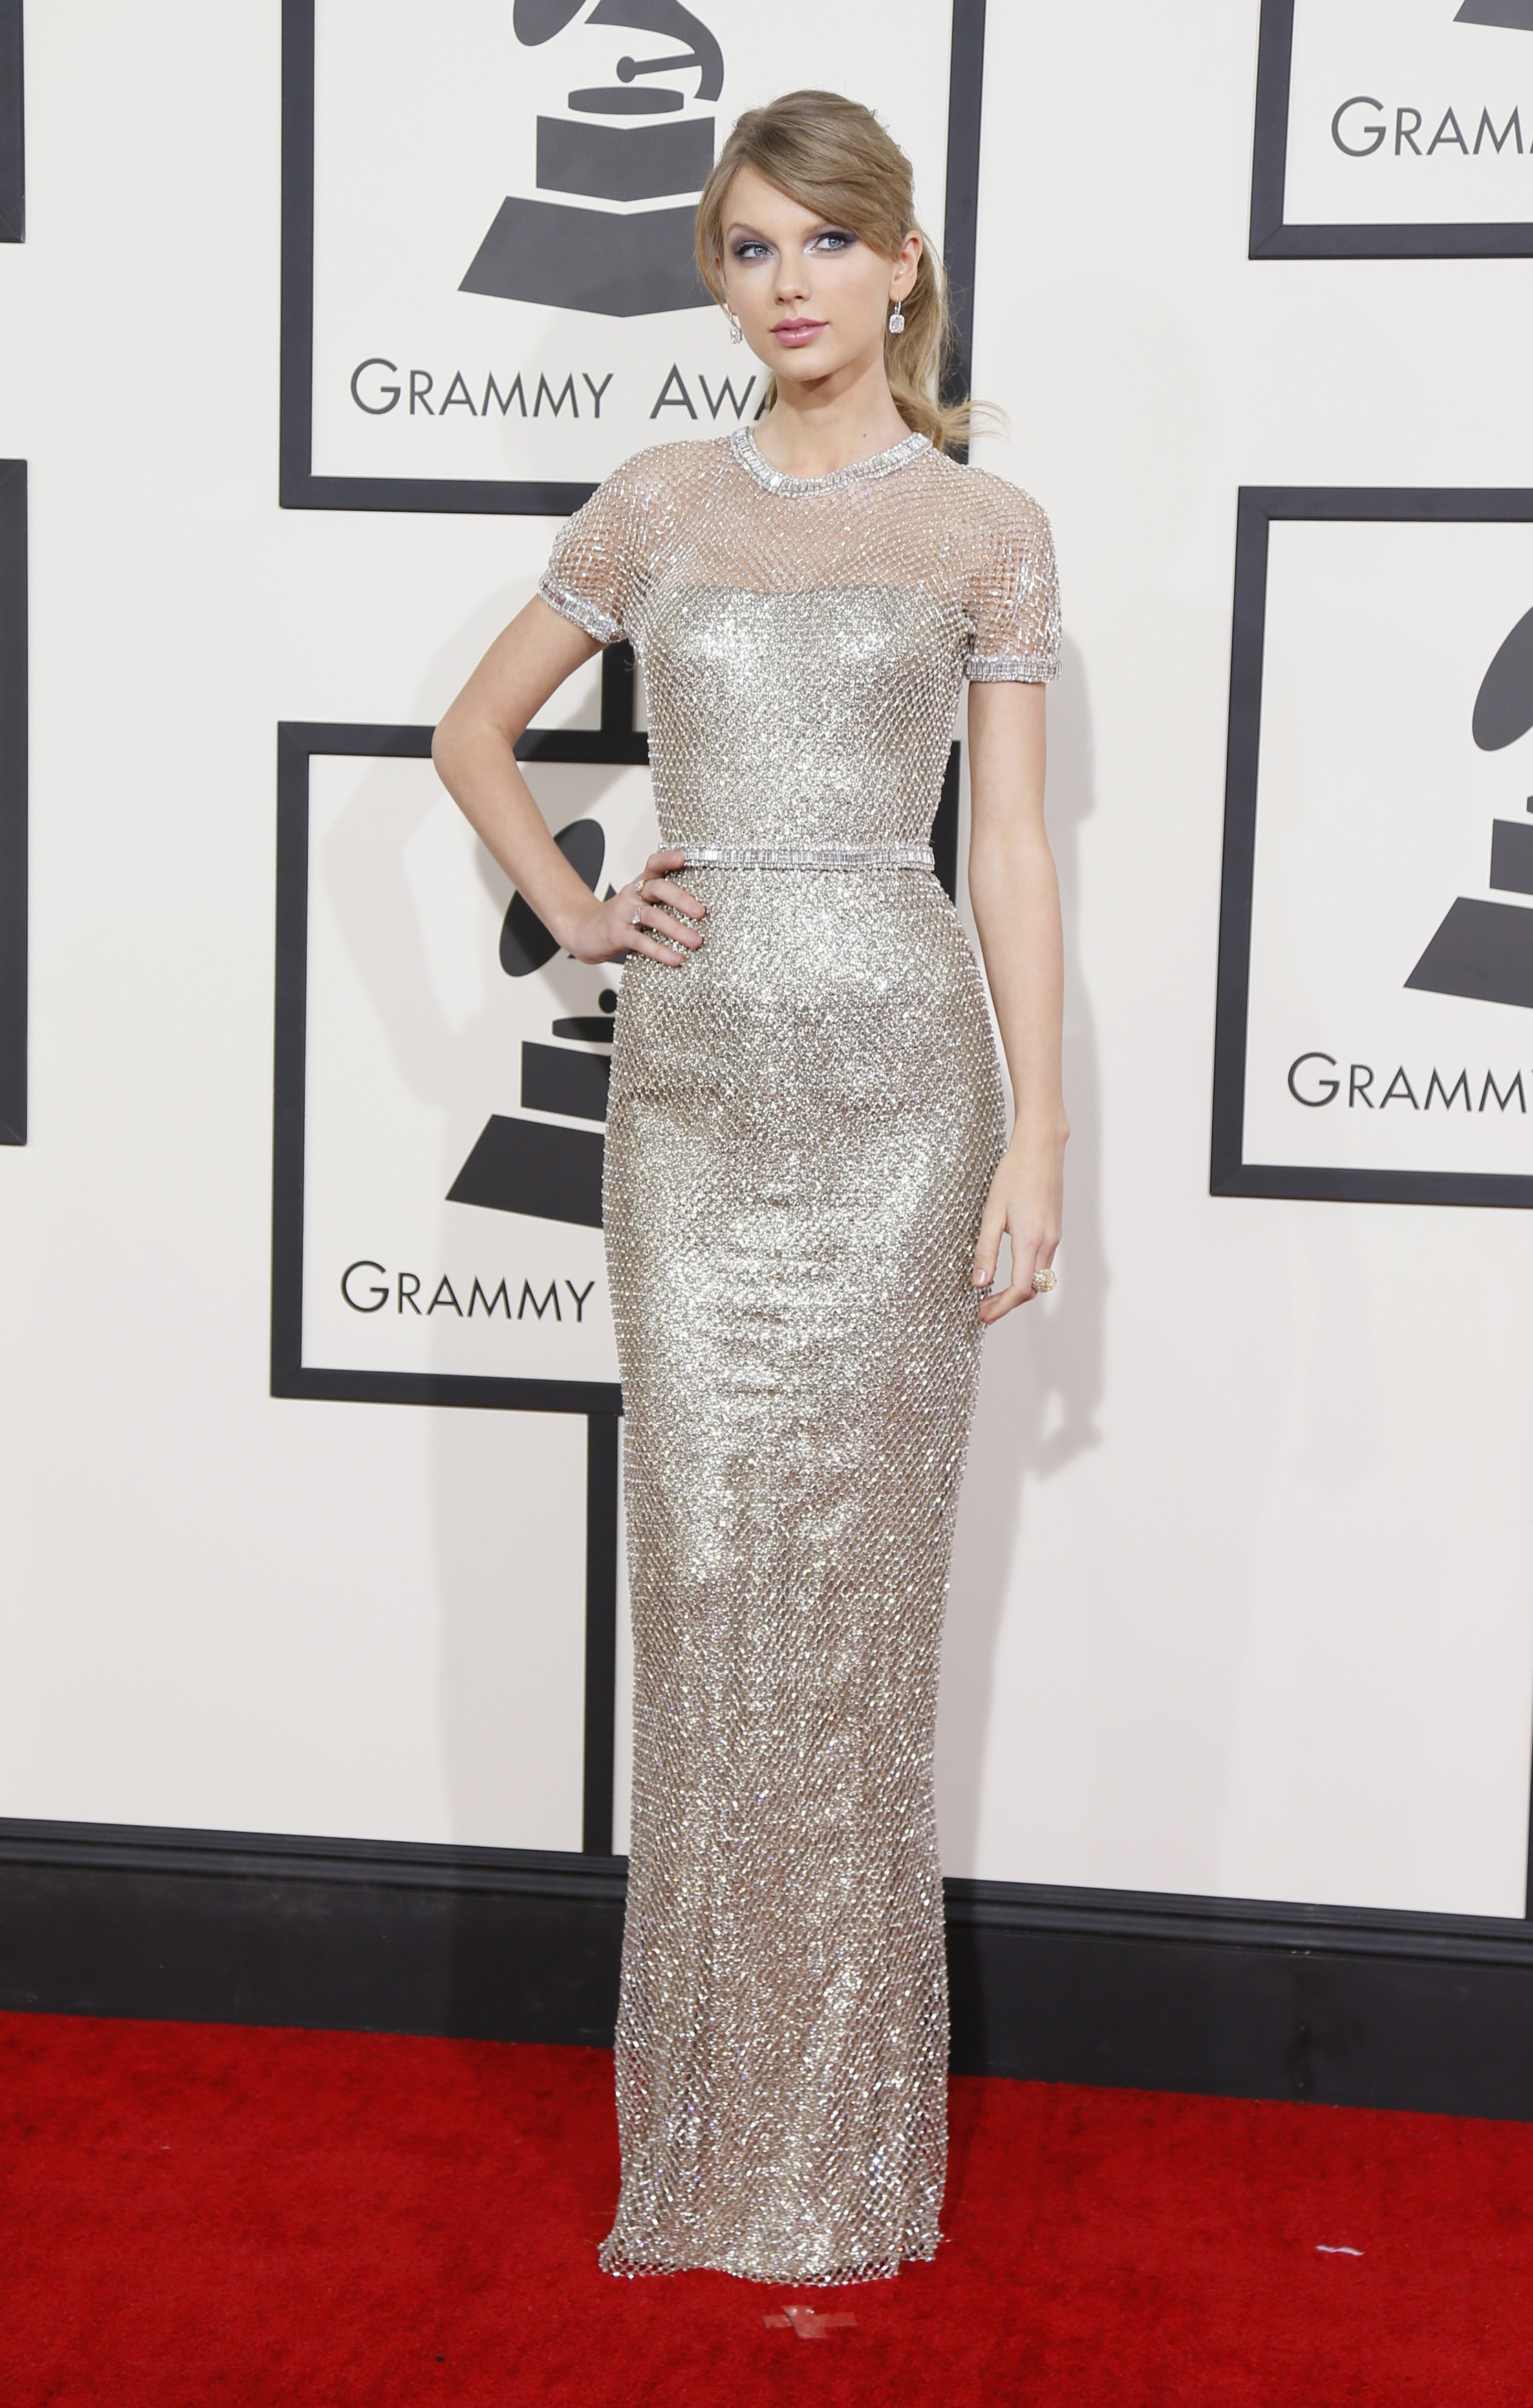 Taylor Swift Red Carpet Dresses 2016 2017 Fashion Trends